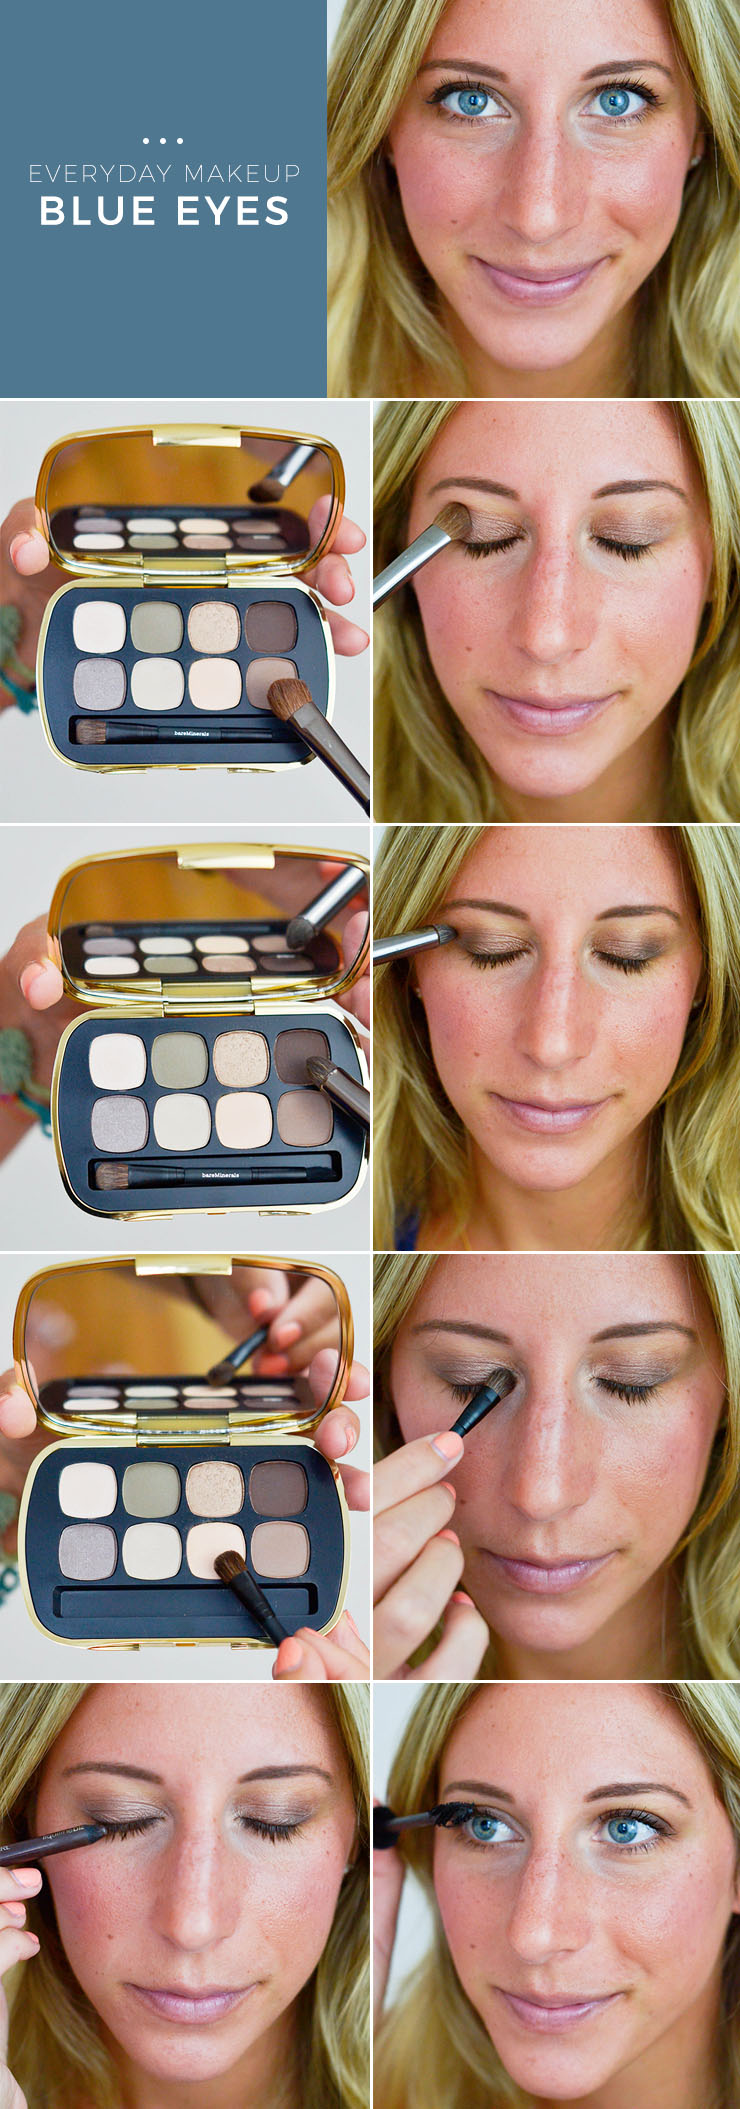 makeup for blue eyes